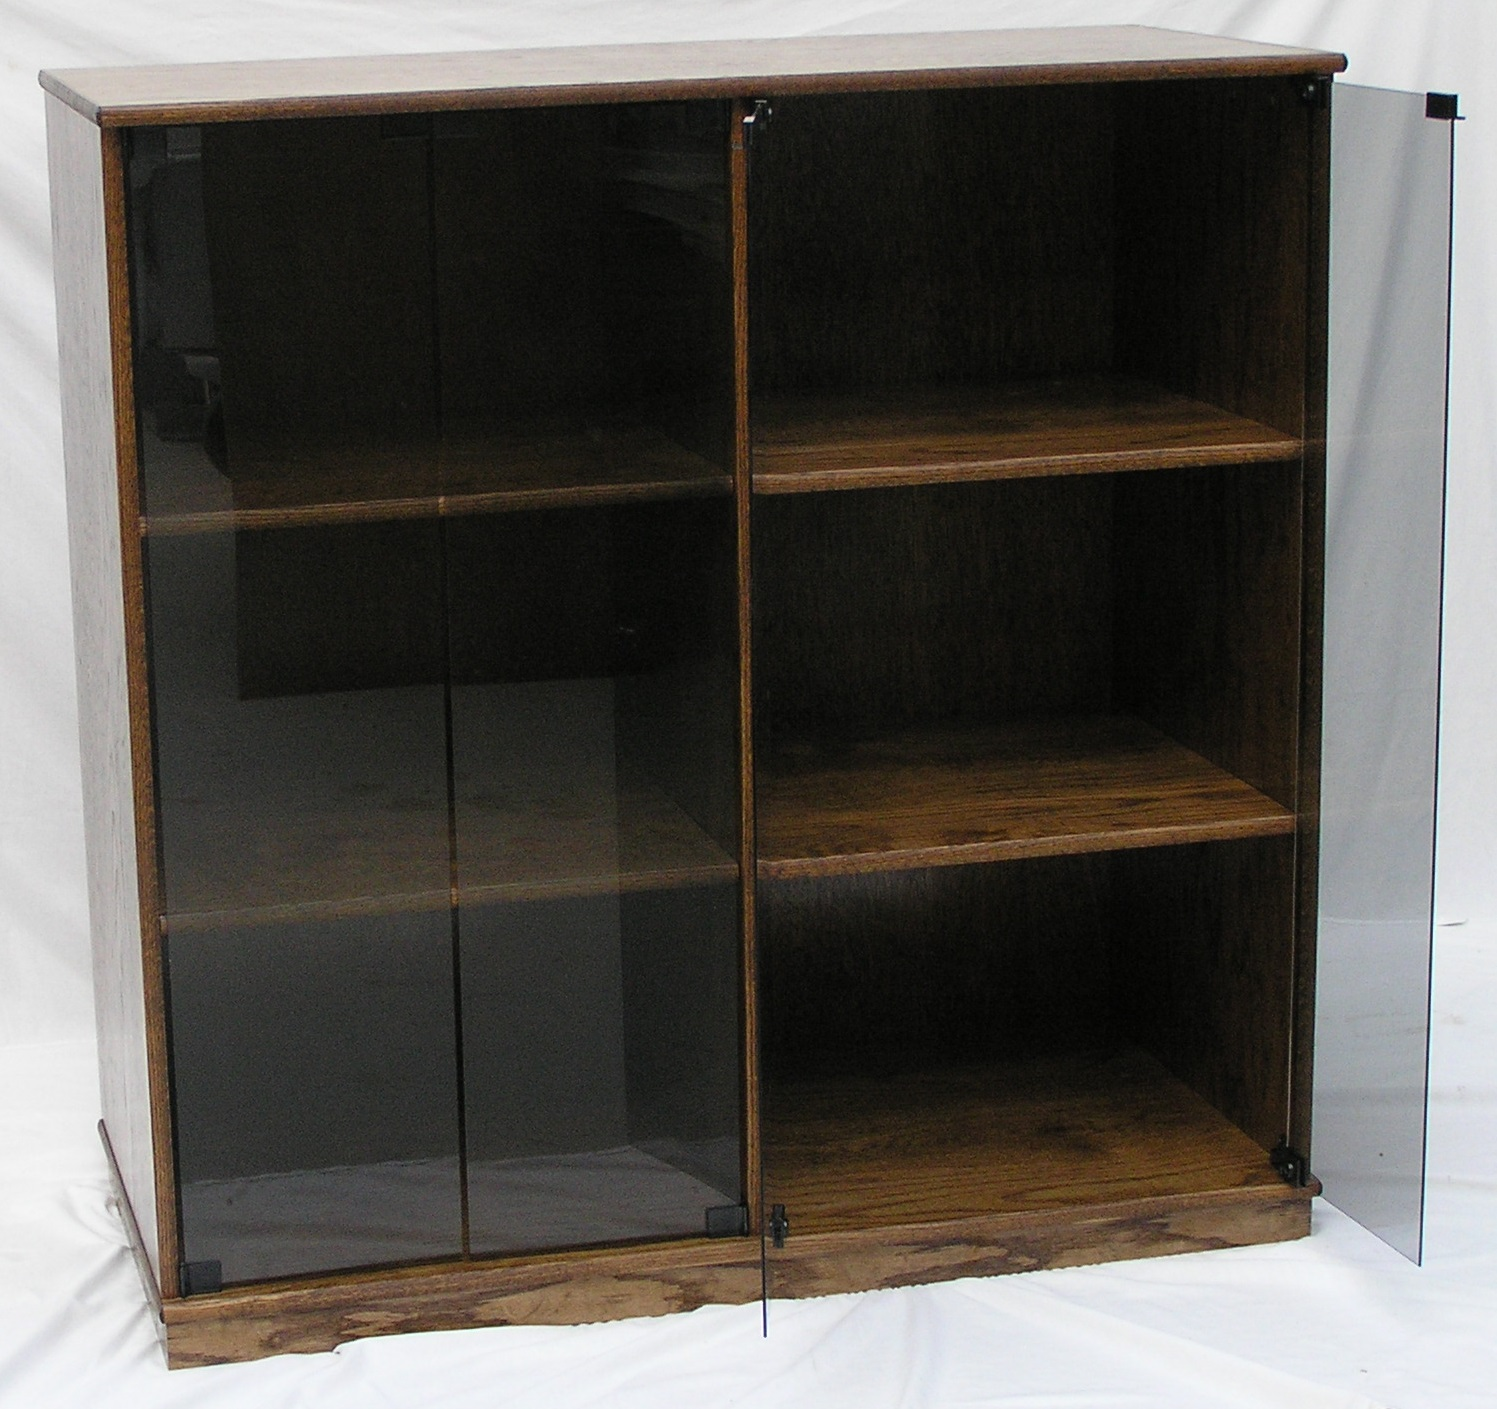 Entertainment center 45H x 22D in oak with open glass doors. Finished in Minwax Provincial stain.